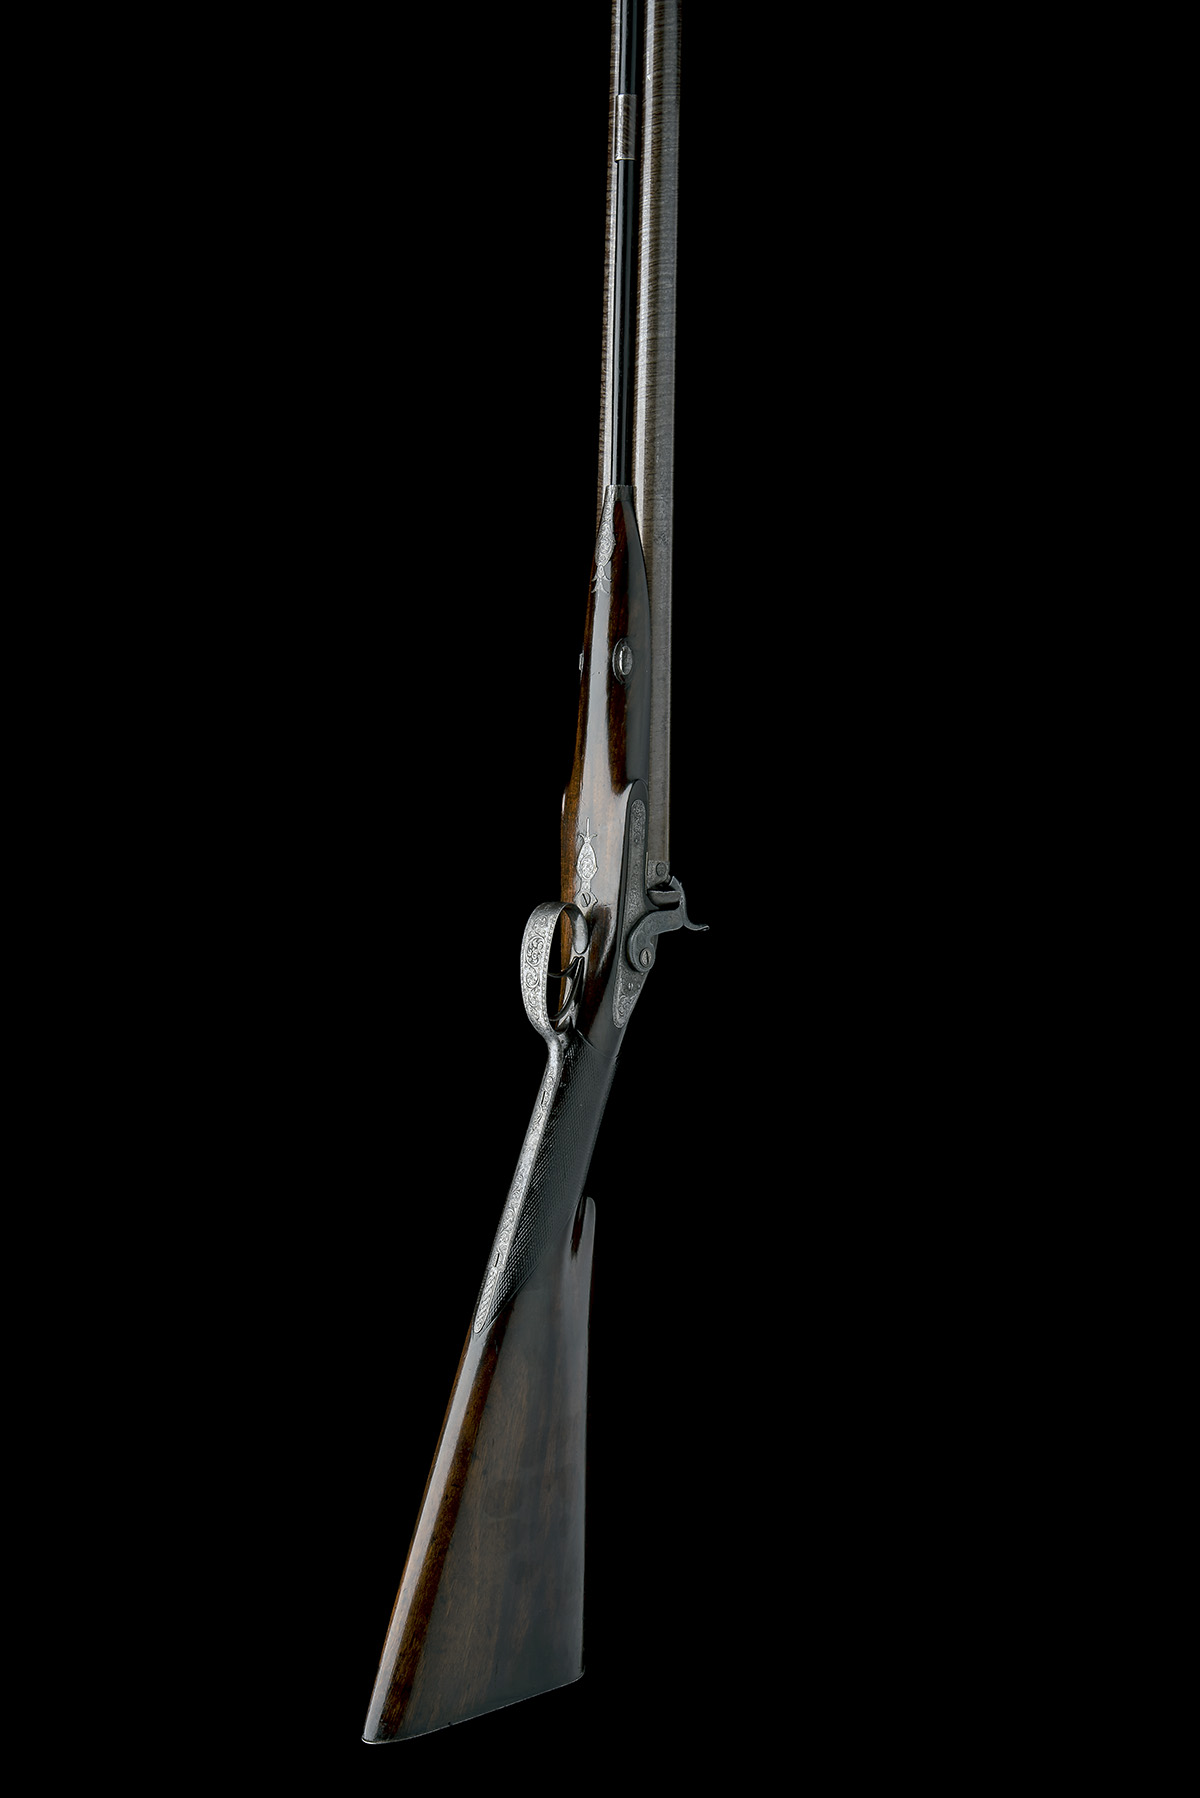 J.C. REILLY, LONDON A GOOD 12-BORE PERCUSSION DOUBLE-BARRELLED SPORTING-GUN, serial no 5580, for - Image 5 of 11